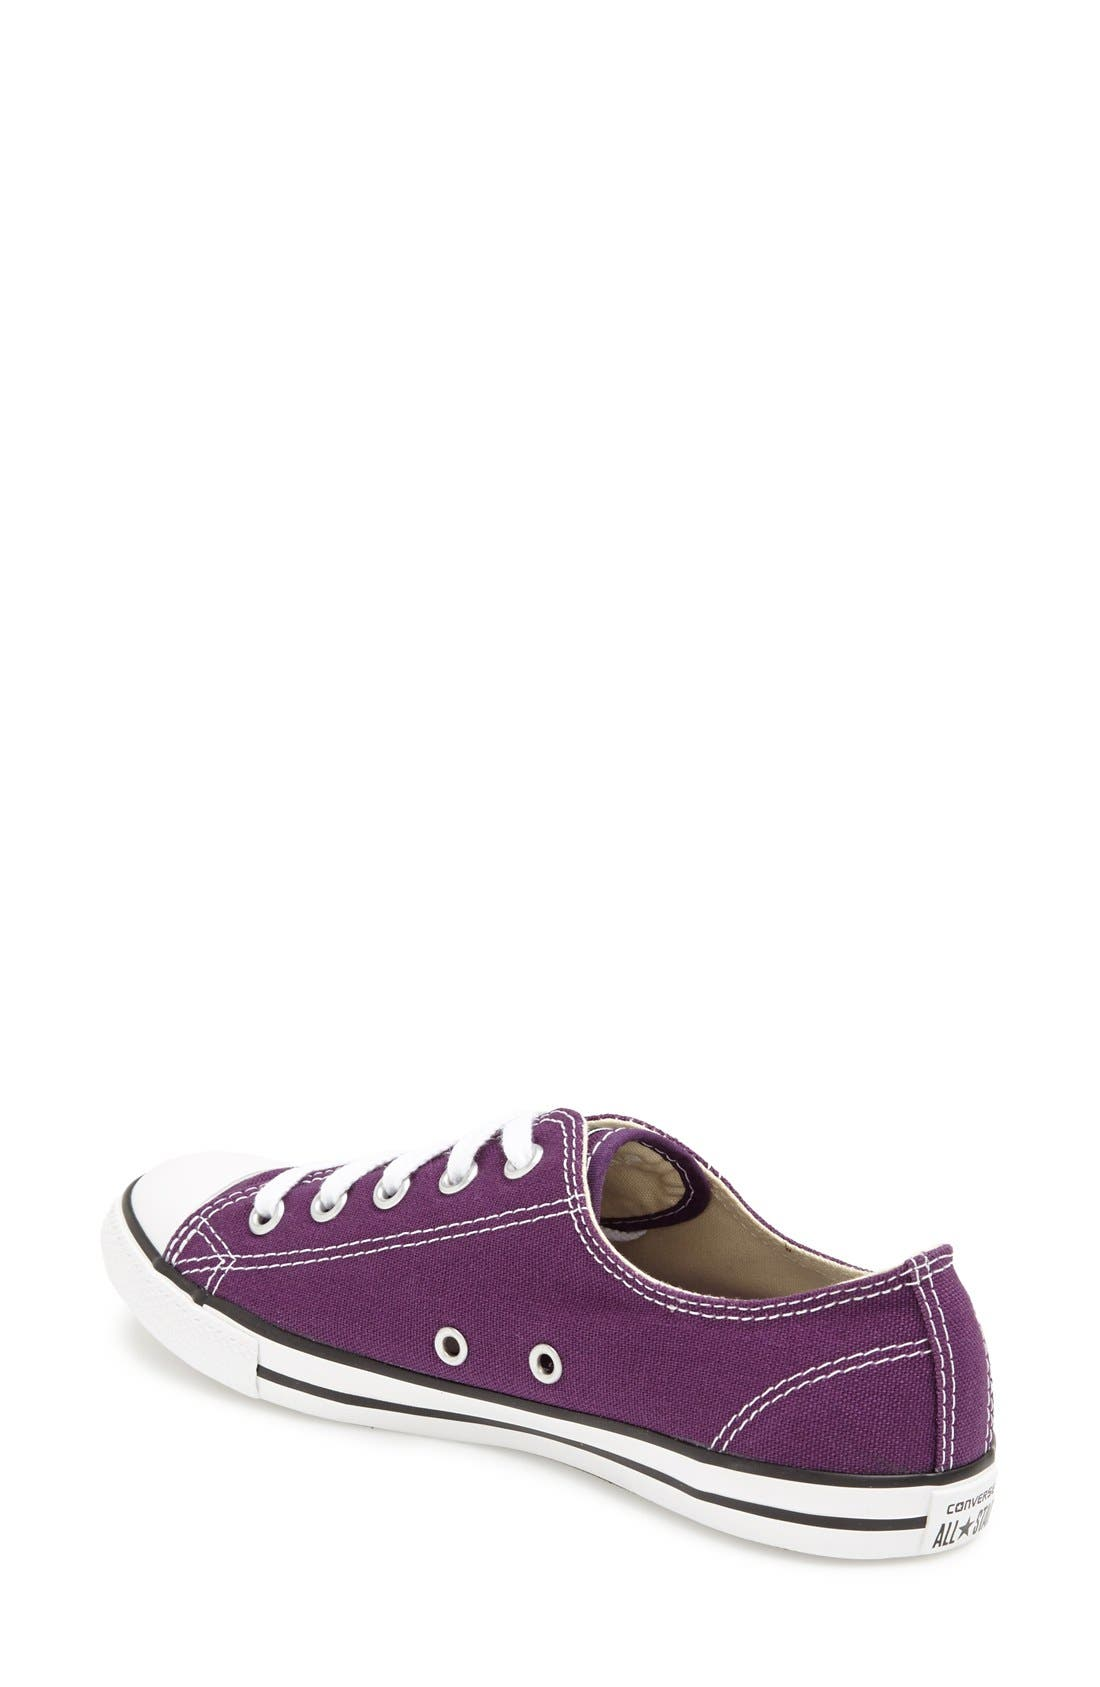 ,                             Chuck Taylor<sup>®</sup> 'Dainty' Sneaker,                             Alternate thumbnail 26, color,                             530